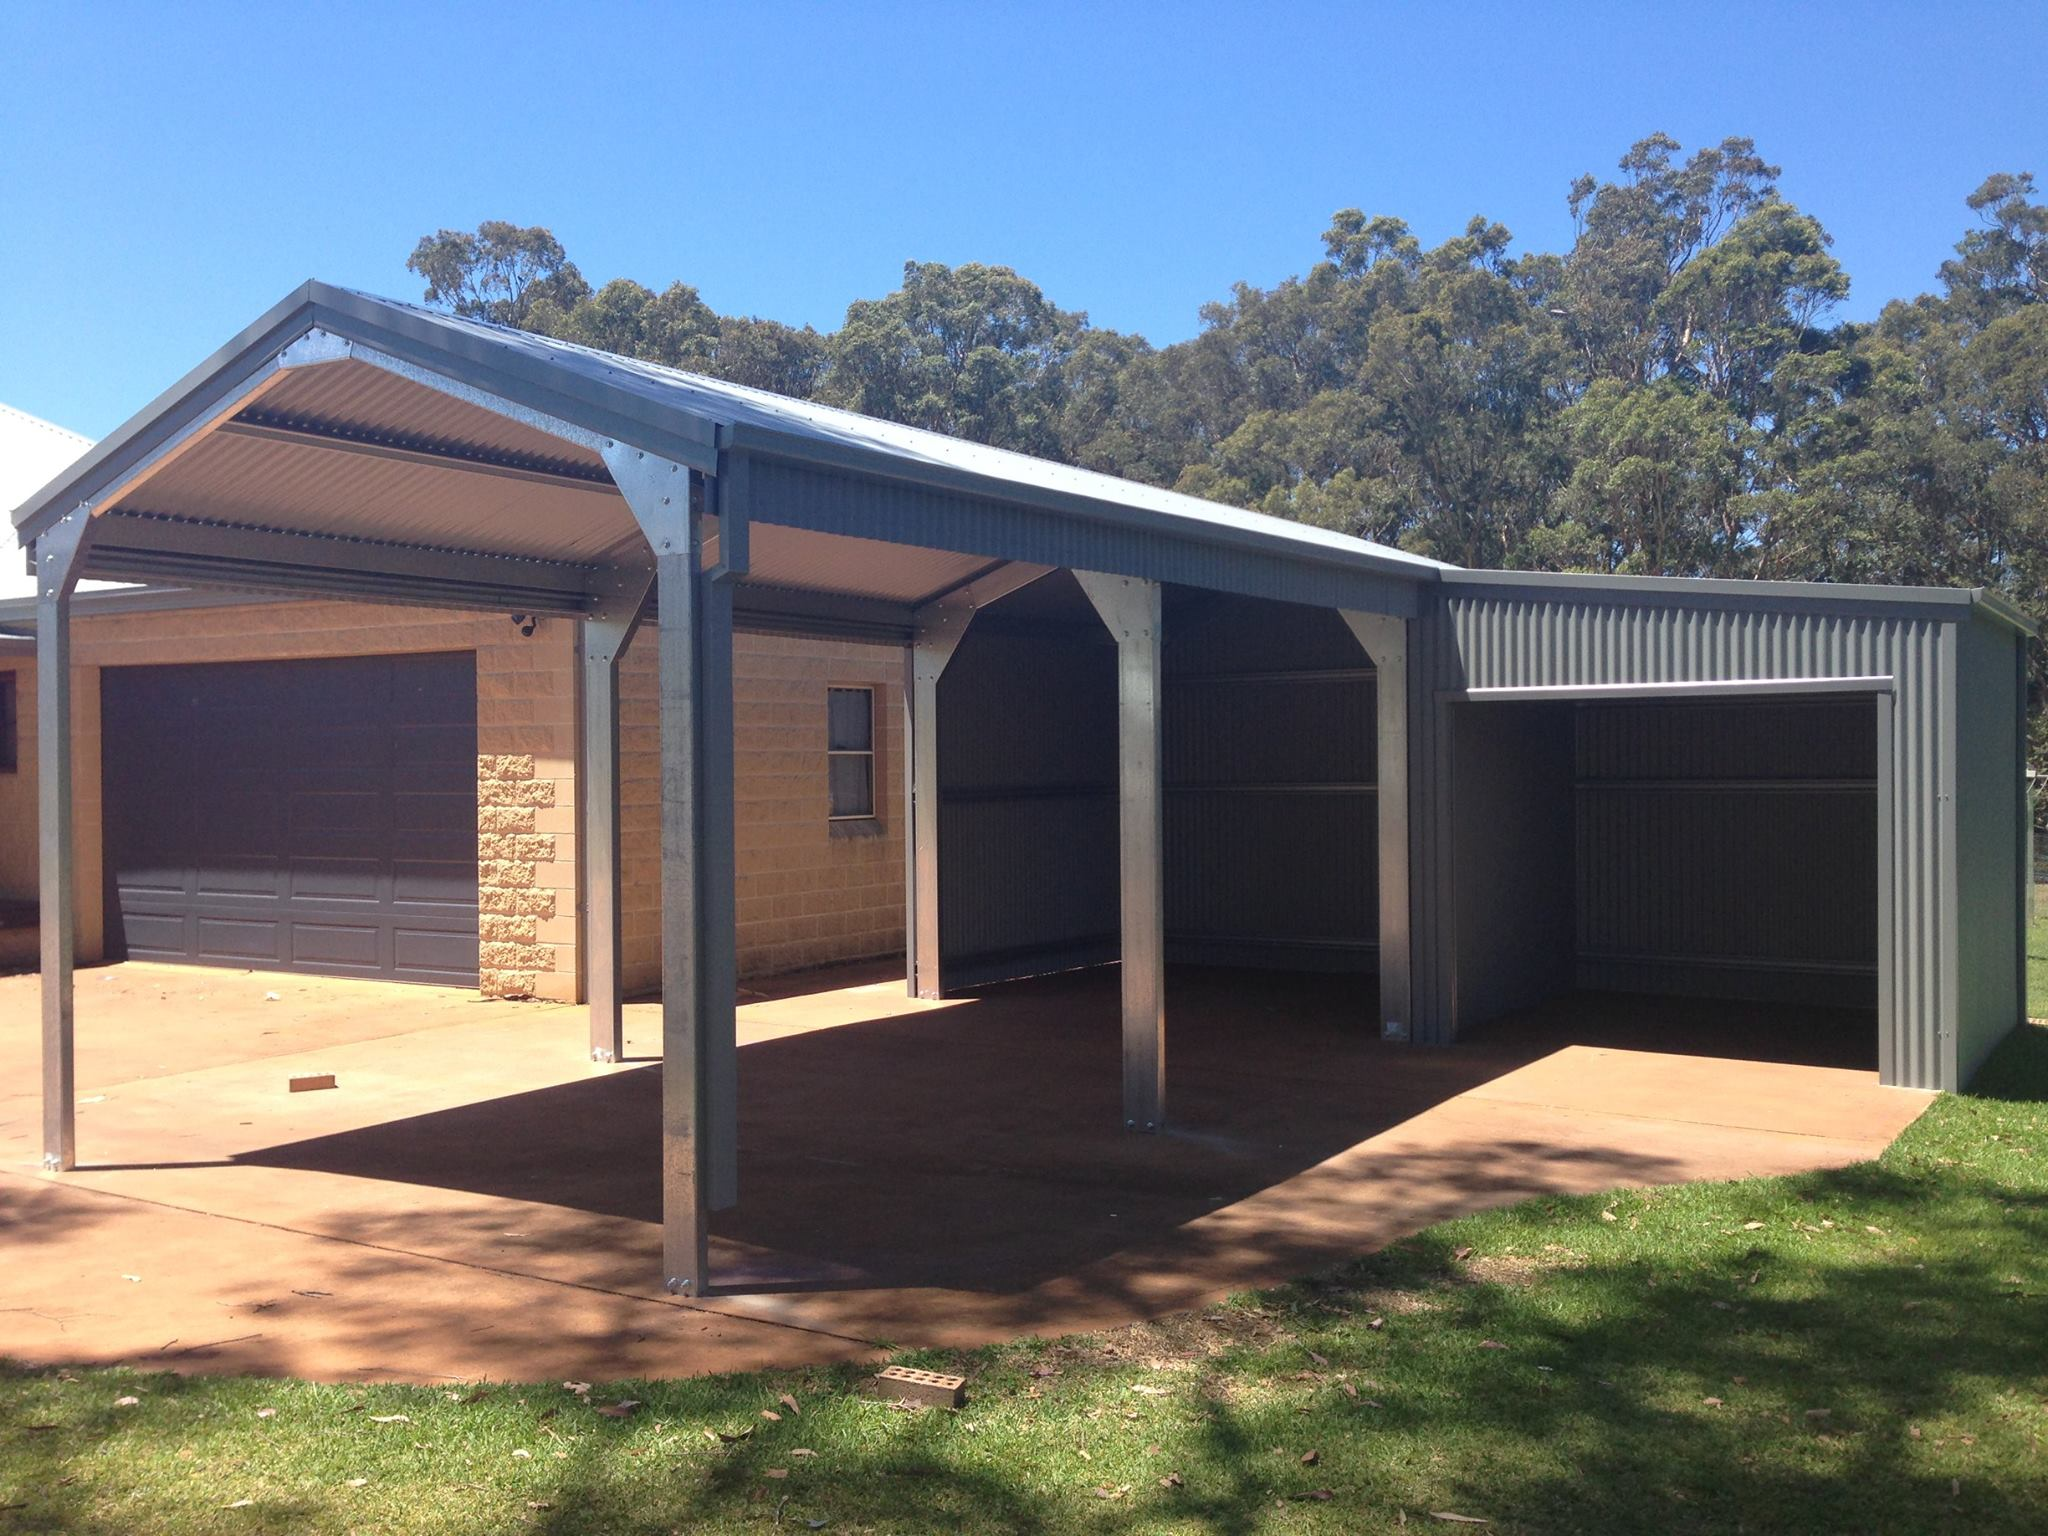 Sheds in the Shoalhaven